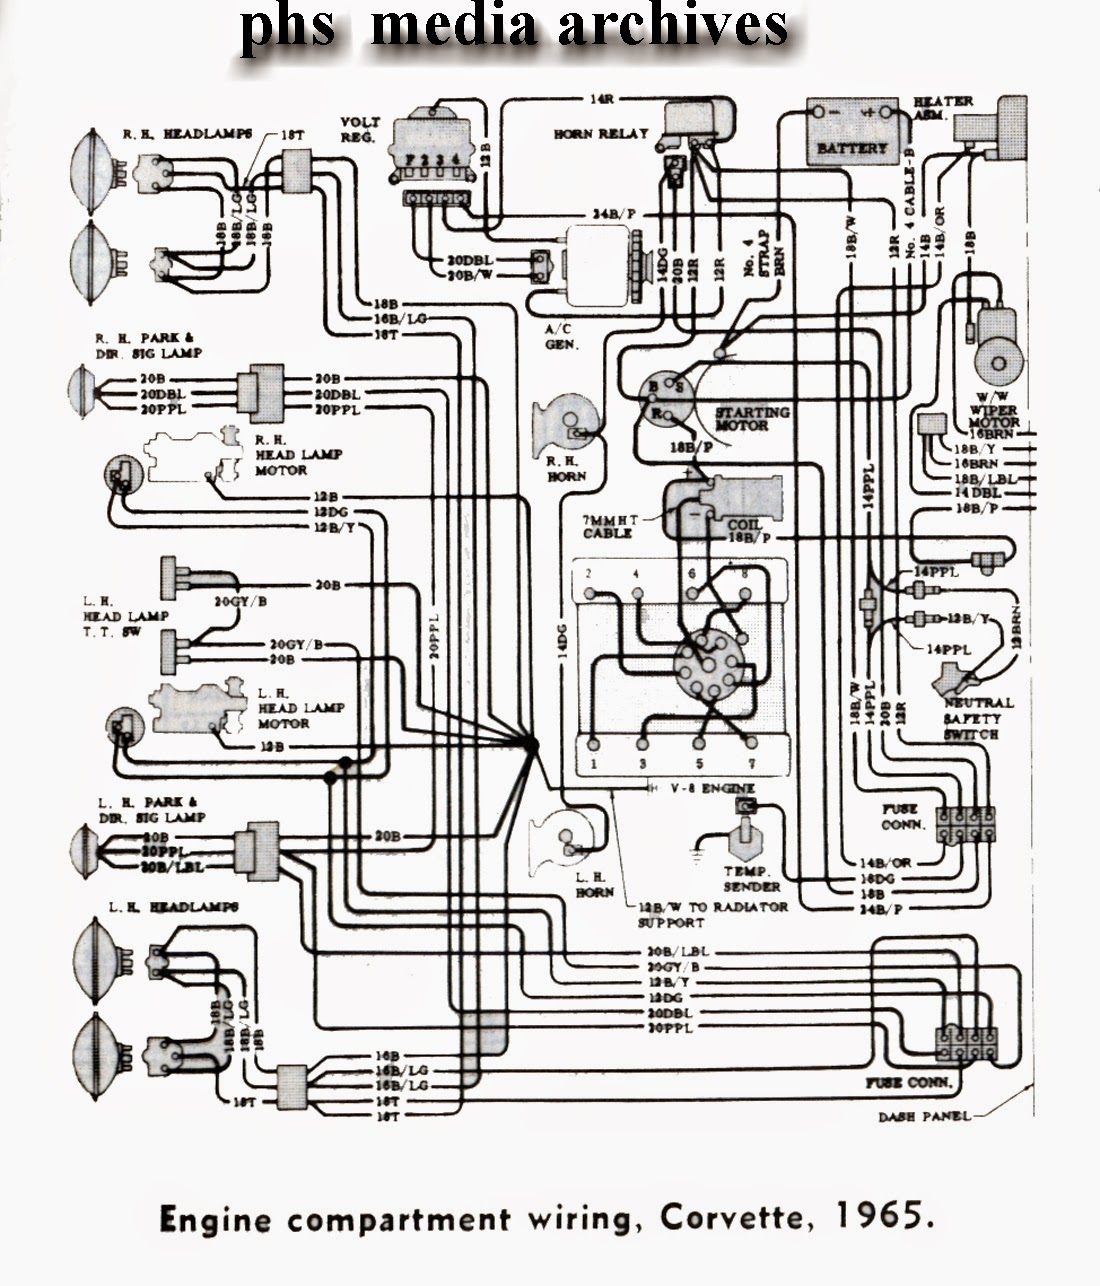 Fuse Box Wiring Diagram 76 Corvette Opinions About Wiring Diagram \u2022  4Runner Fuse Box 76 Corvette Fuse Box Layout